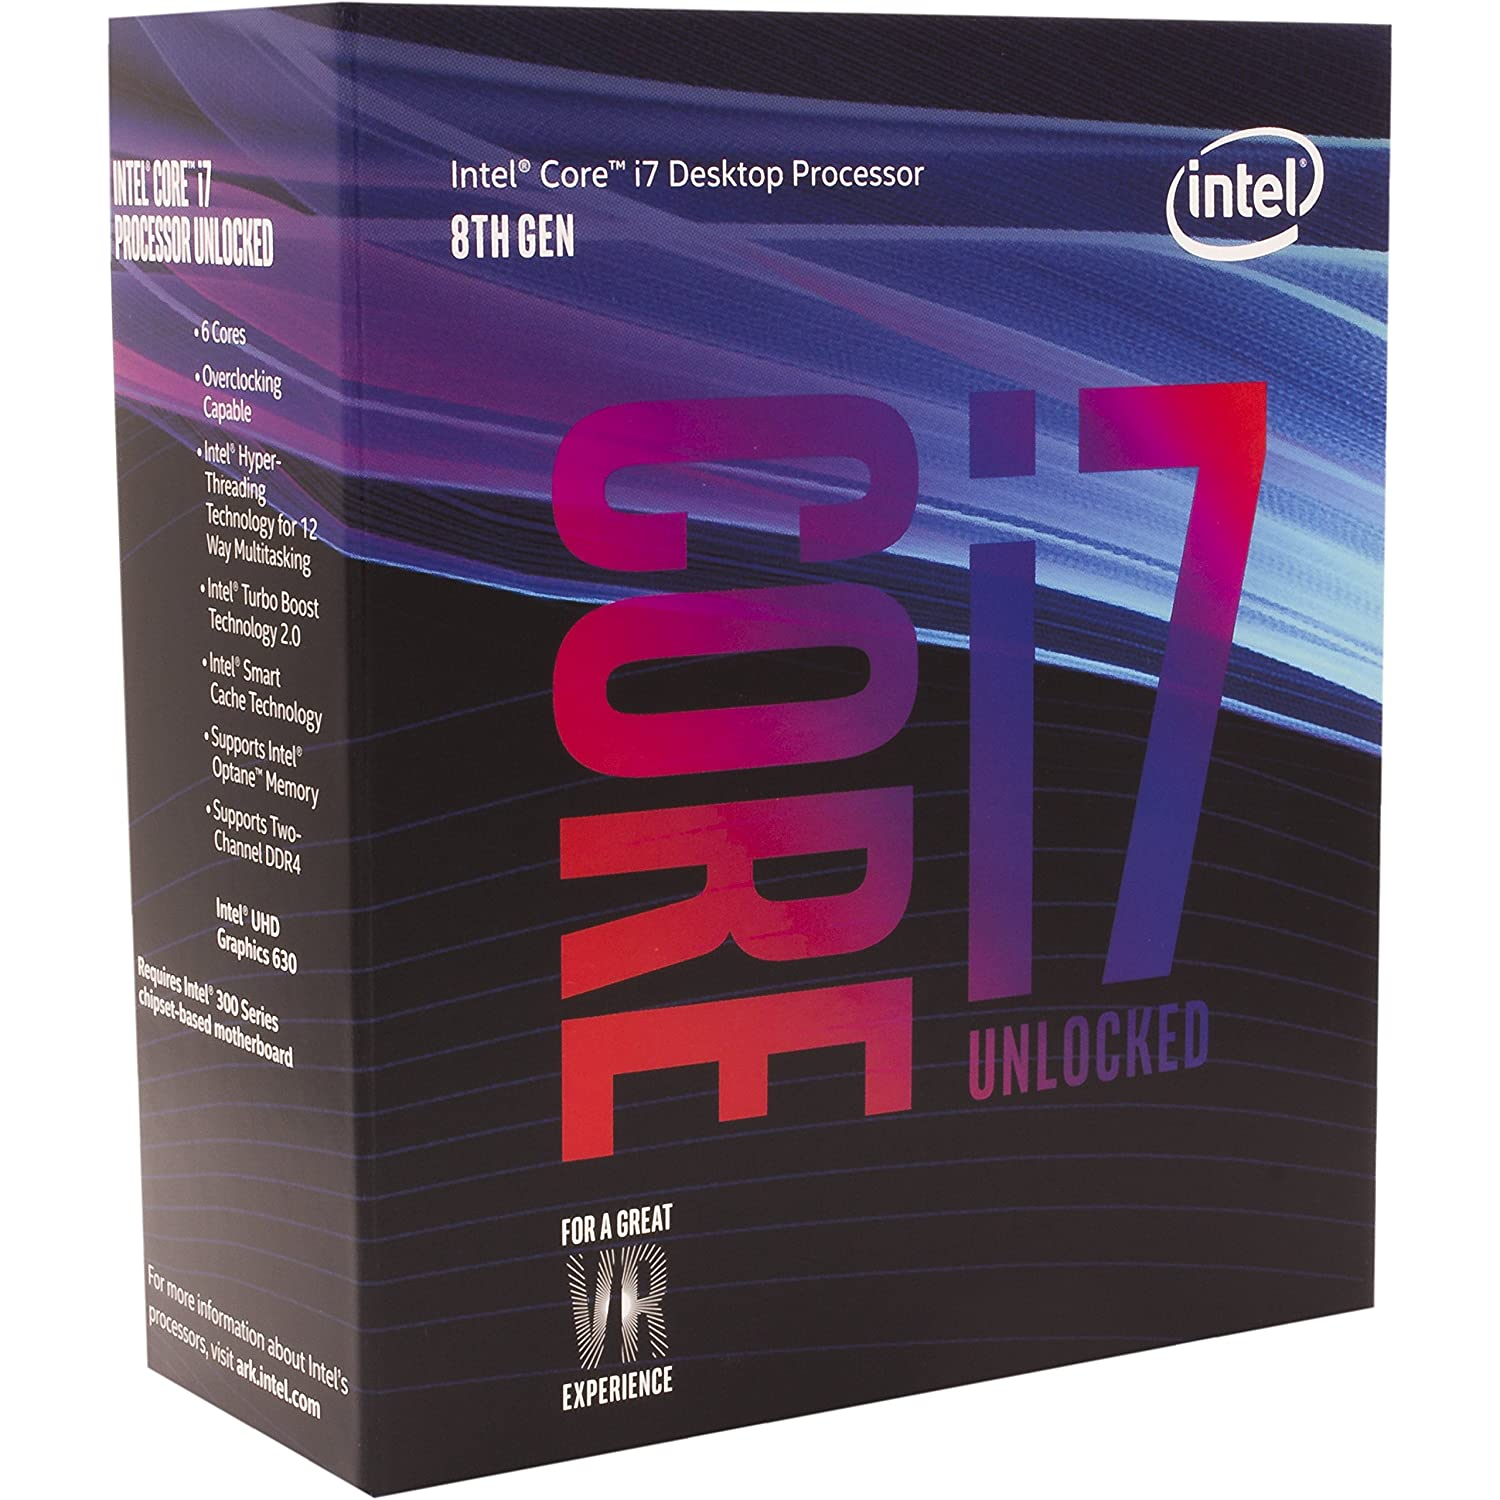 Intel Core i7-8700K Desktop Processor 6 Cores up to 4.7GHz